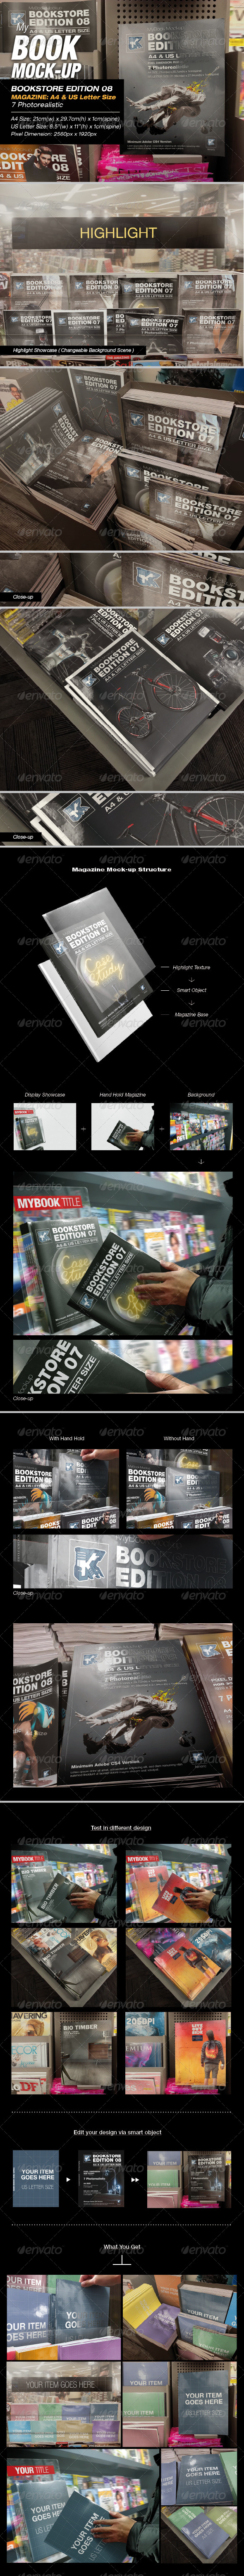 GraphicRiver MyBook Mock-up Bookstore Edition 08 8326463